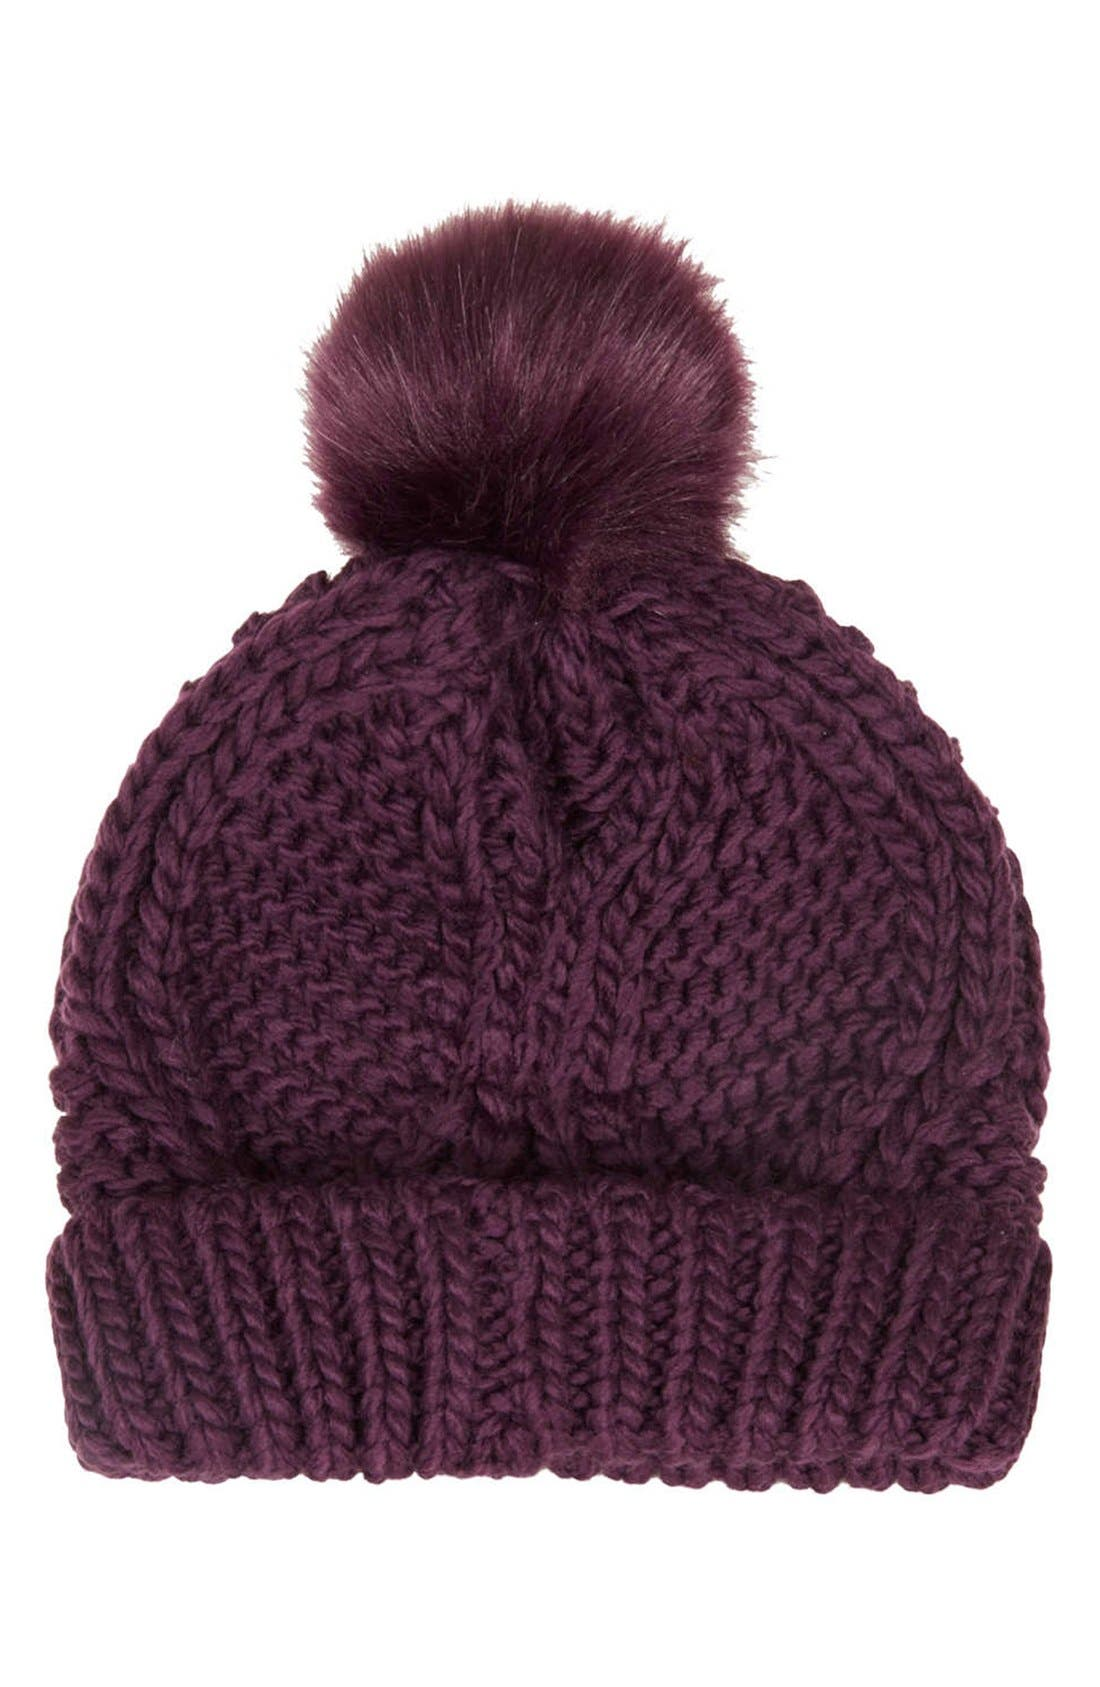 Alternate Image 1 Selected - Topshop Cable Knit Pompom Beanie